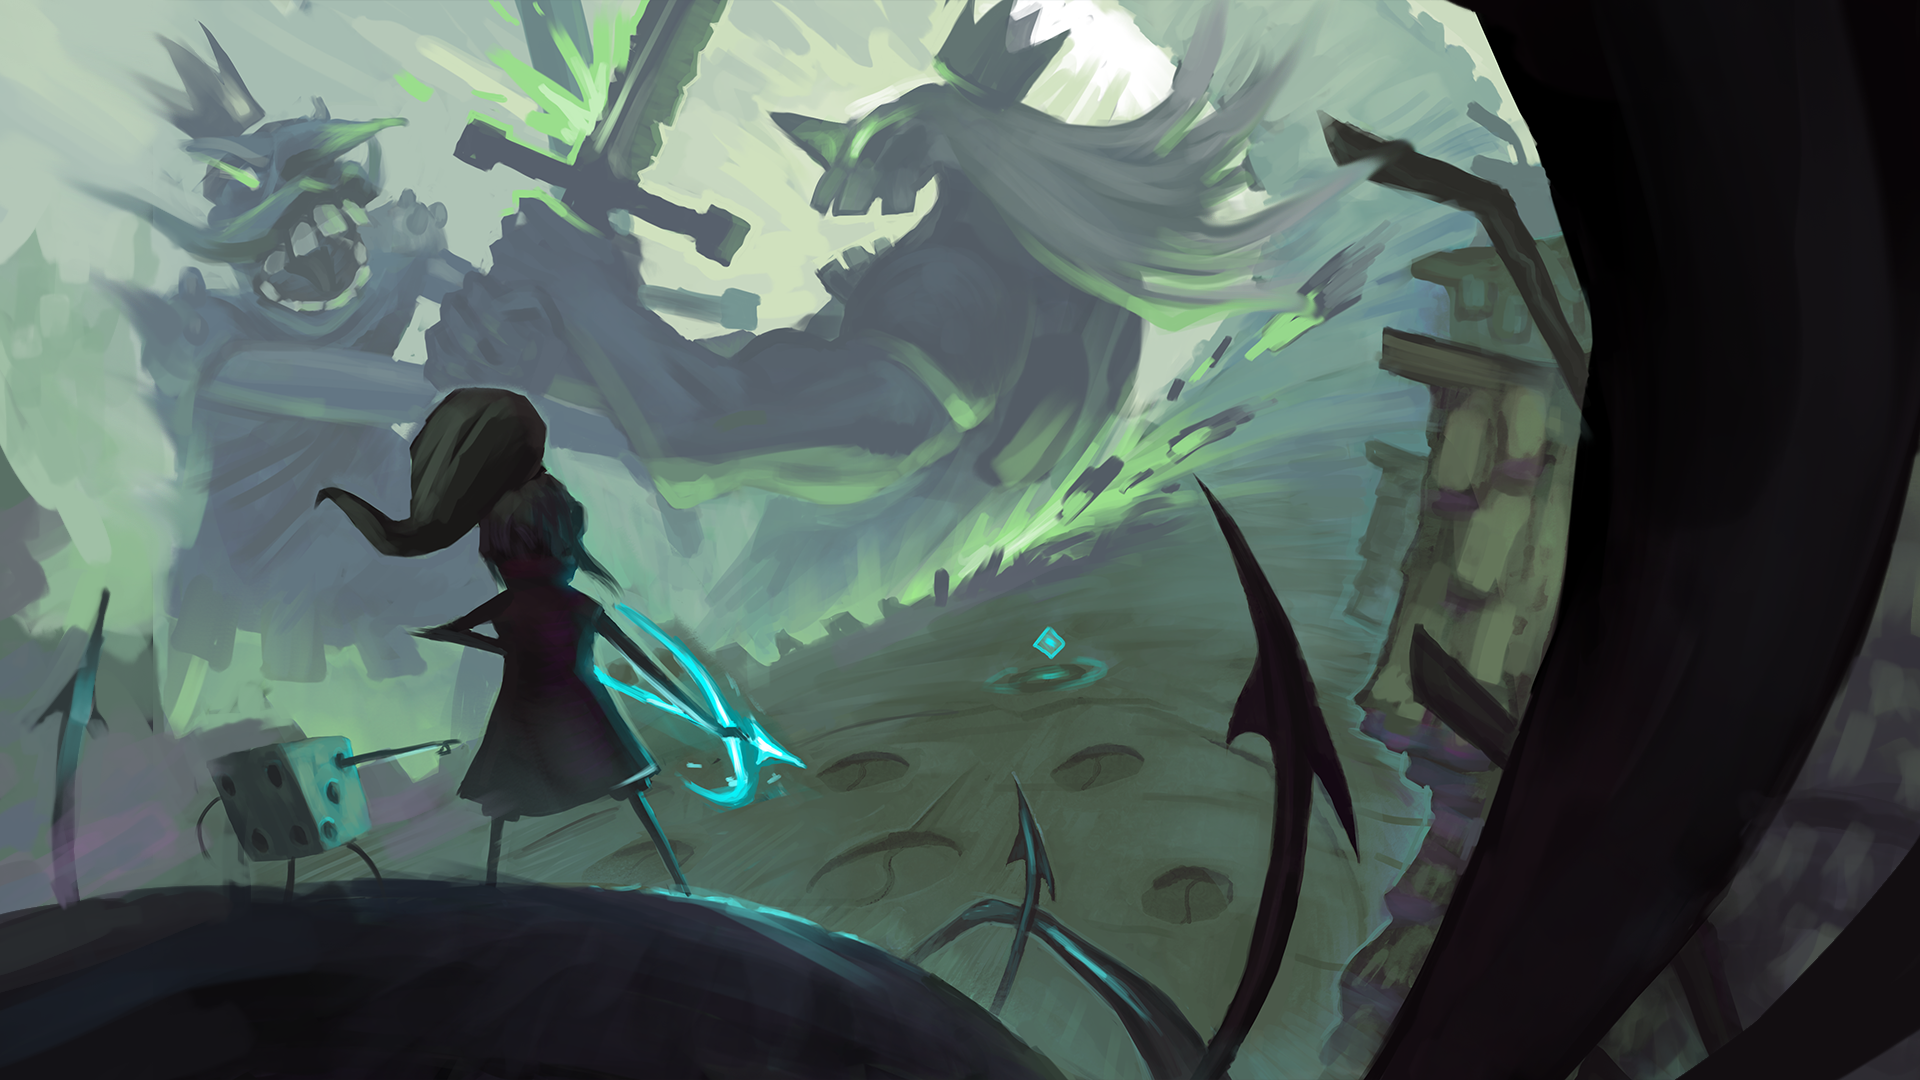 Concept art shows a young girl with a glowing bow and arrow in the foreground, with a large, sword-wielding spirit wearing a crown in the distance